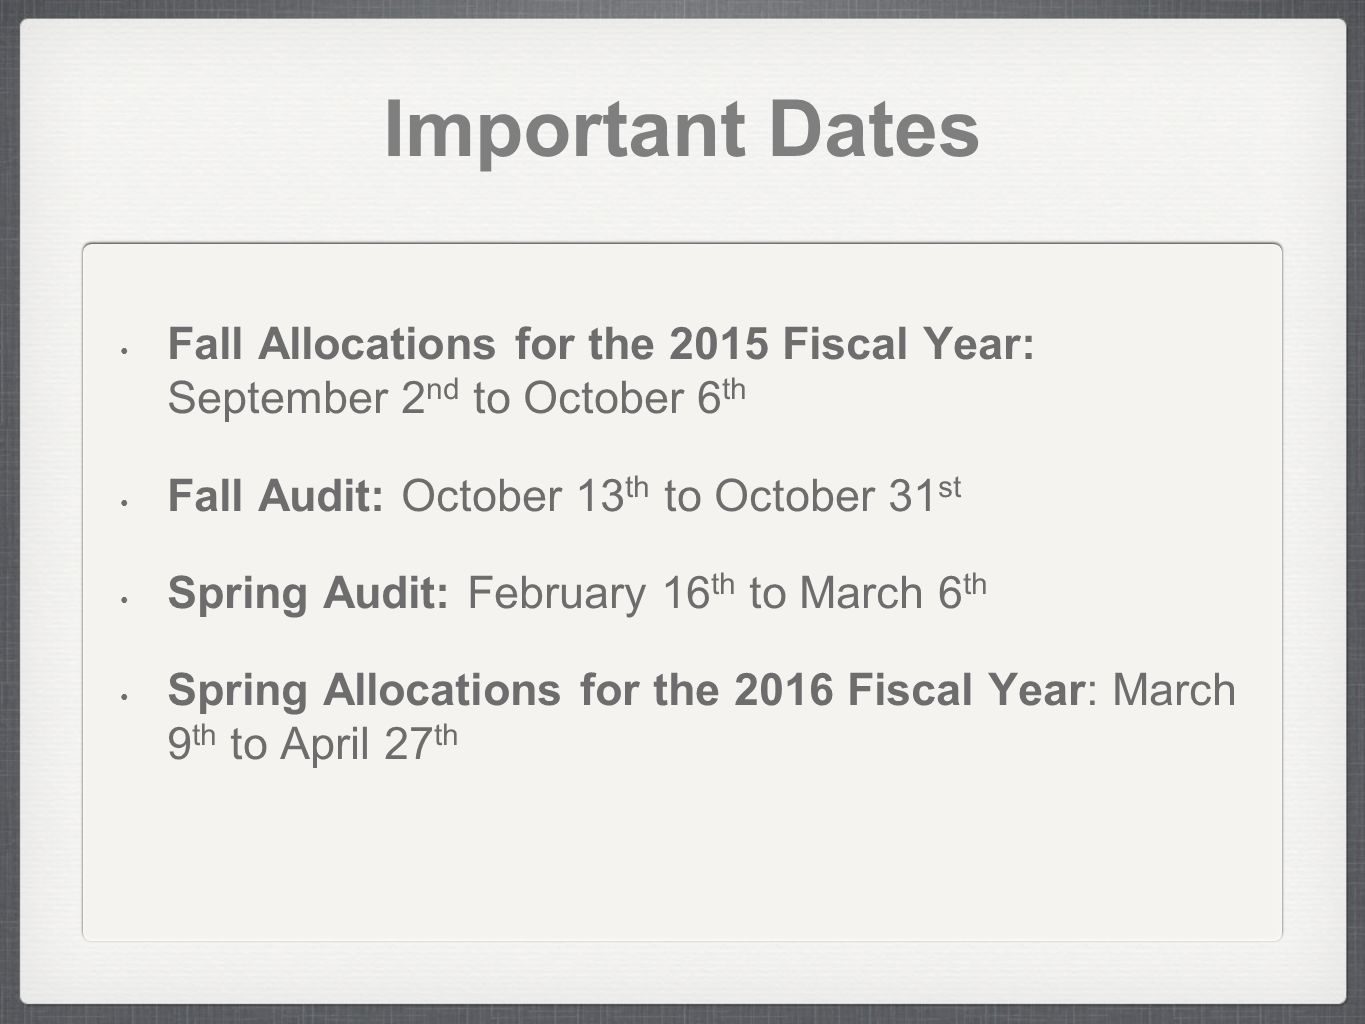 Important Dates Fall Allocations for the 2015 Fiscal Year: September 2 nd to October 6 th Fall Audit: October 13 th to October 31 st Spring Audit: February 16 th to March 6 th Spring Allocations for the 2016 Fiscal Year: March 9 th to April 27 th